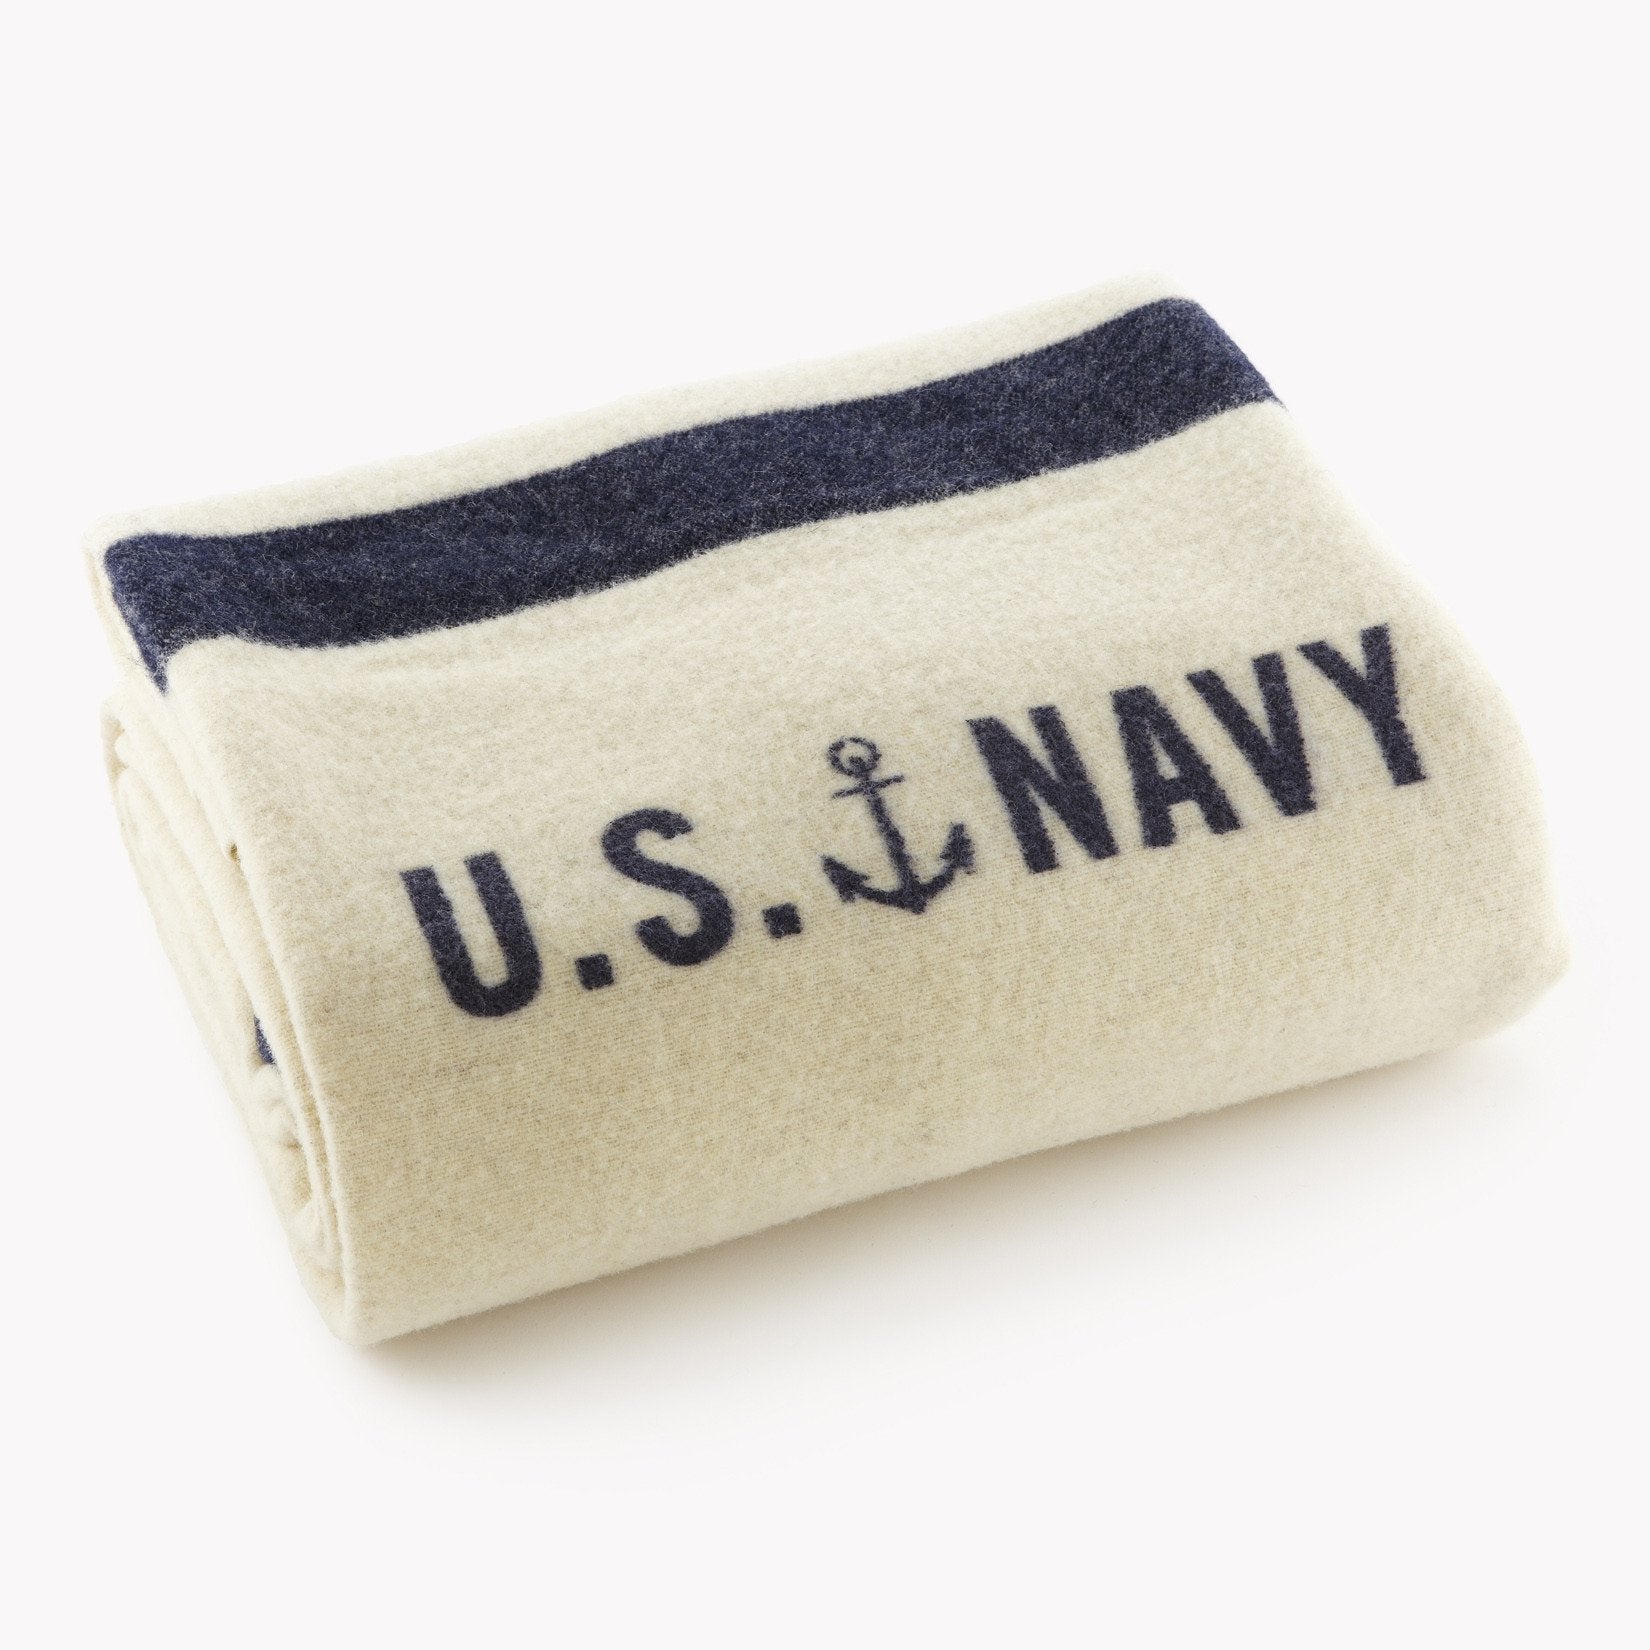 Foot Soldier Military Wool Blanket - US Navy Jacquard